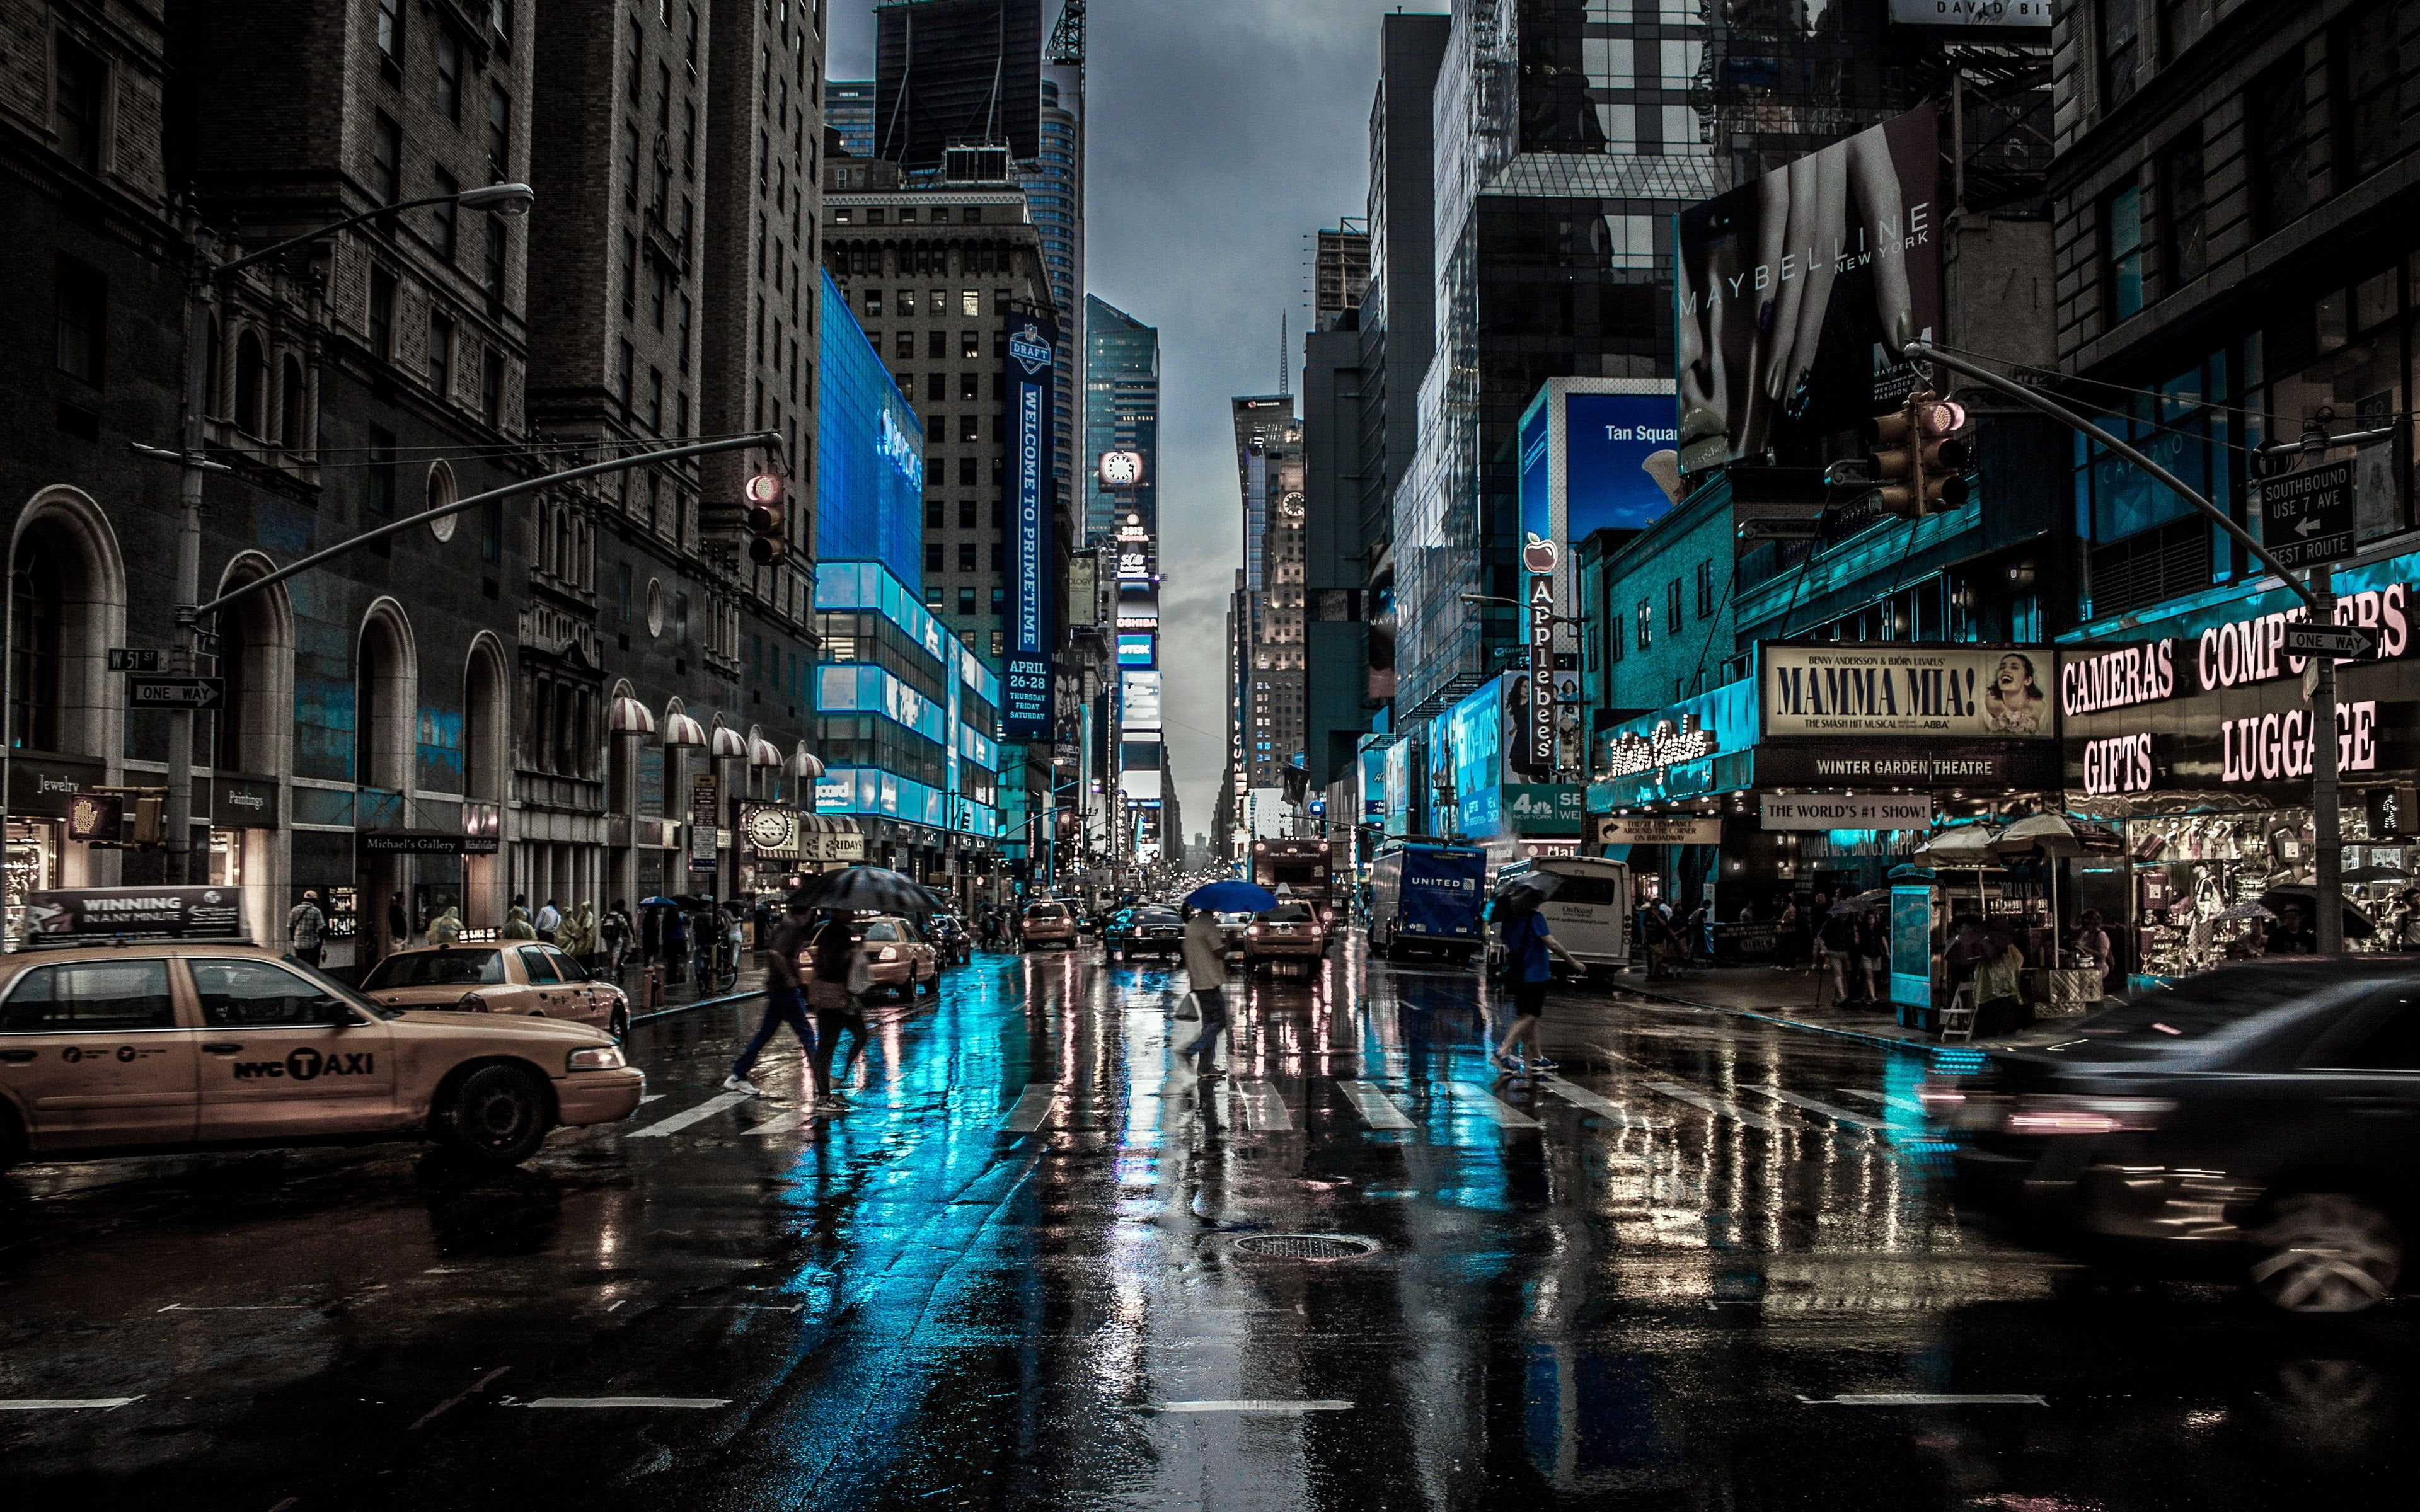 New York City 3d Wallpaper High Rise Buildings And Busy Street In 2021 Fotografie